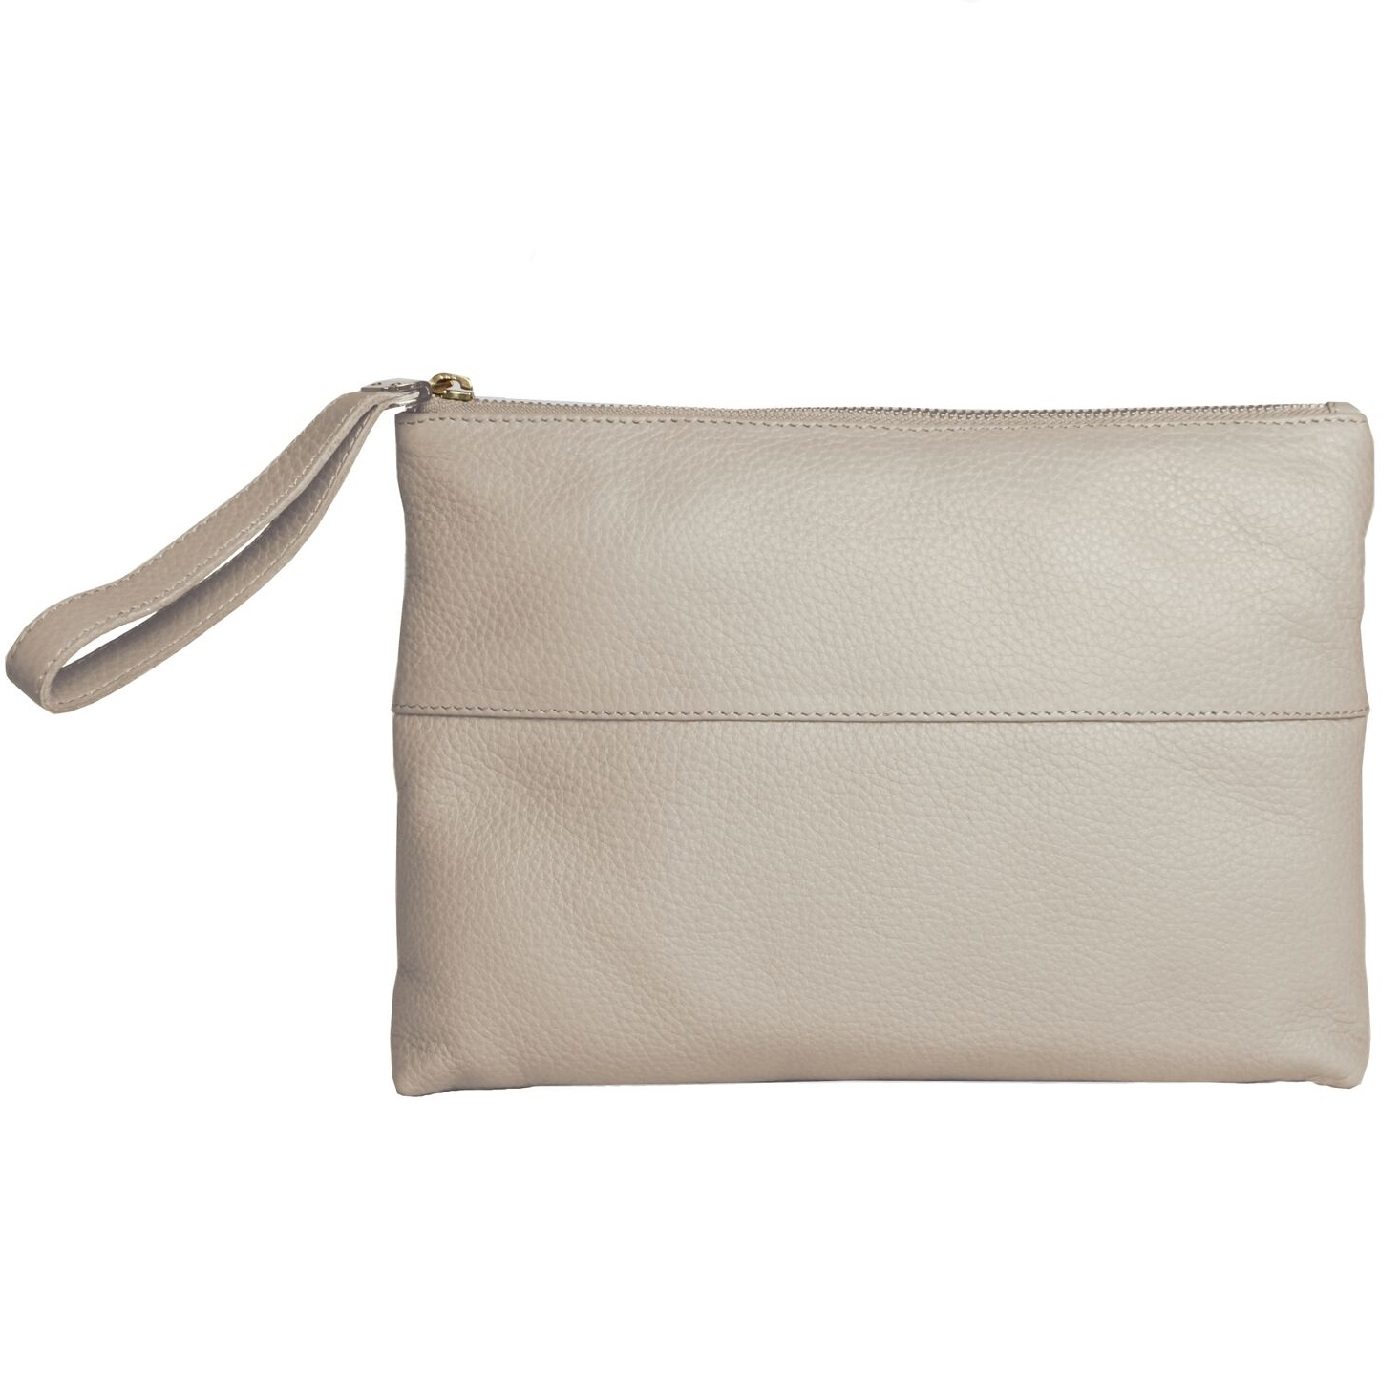 Eastern Counties Leather Womens/Ladies Courtney Clutch Bag (One size) (Stone)